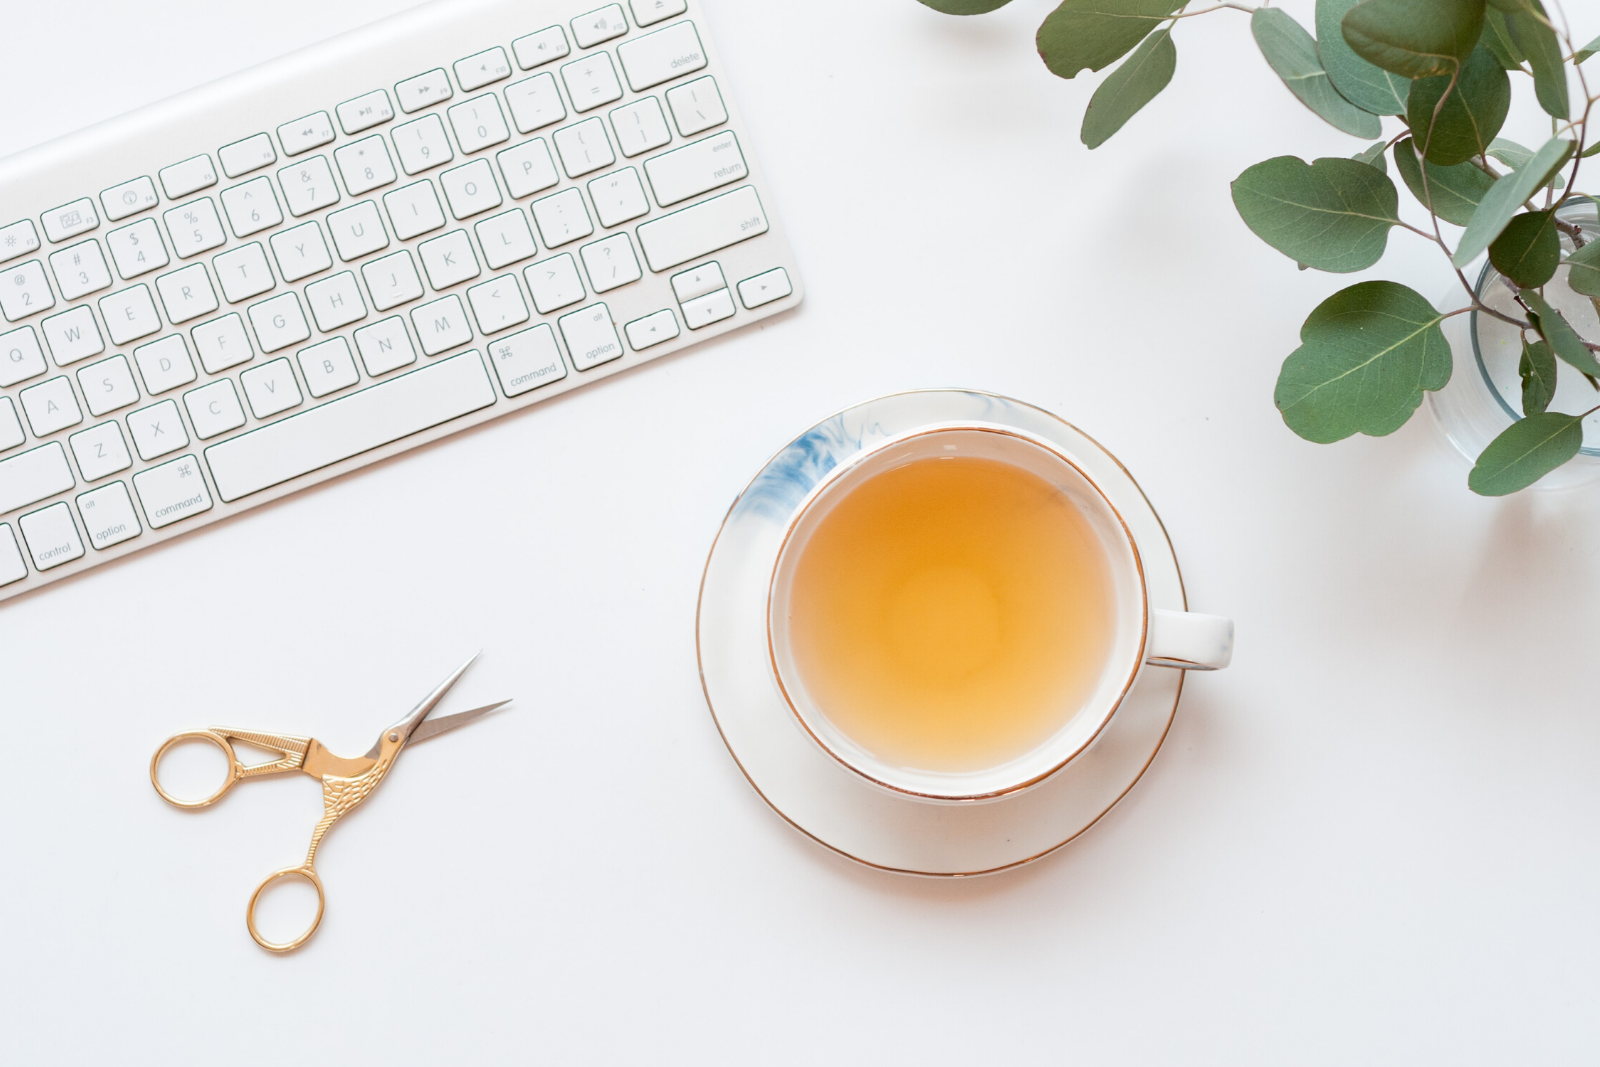 Tea Cup and Keyboard | The 14 Most Popular Teas From Around The World